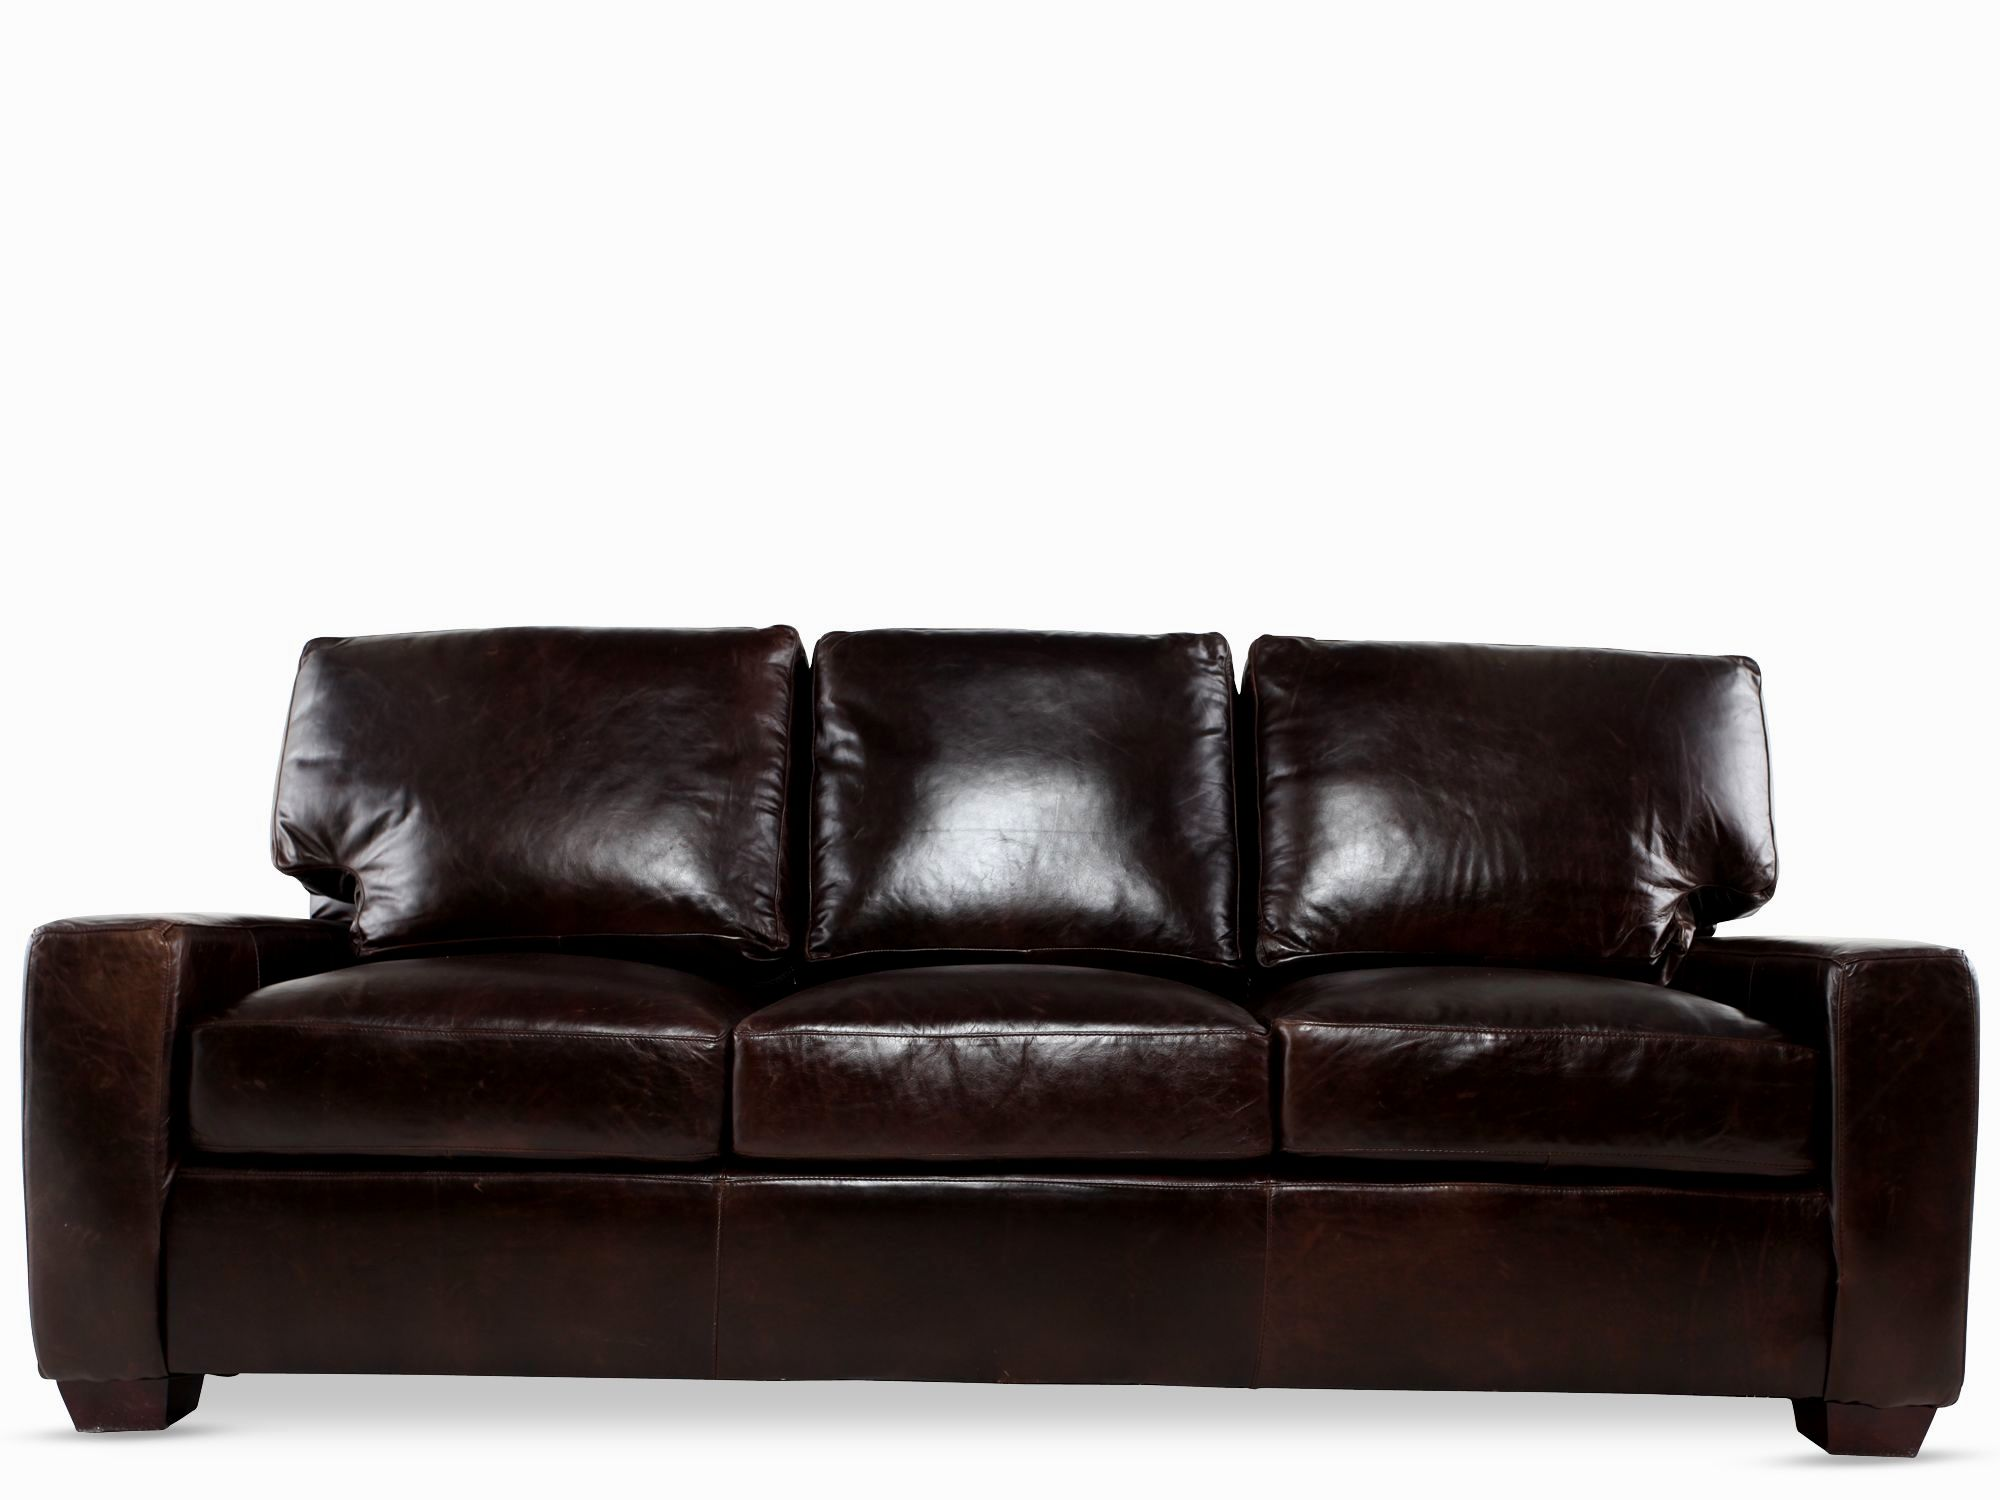 modern high quality sleeper sofa inspiration-Best High Quality Sleeper sofa Online